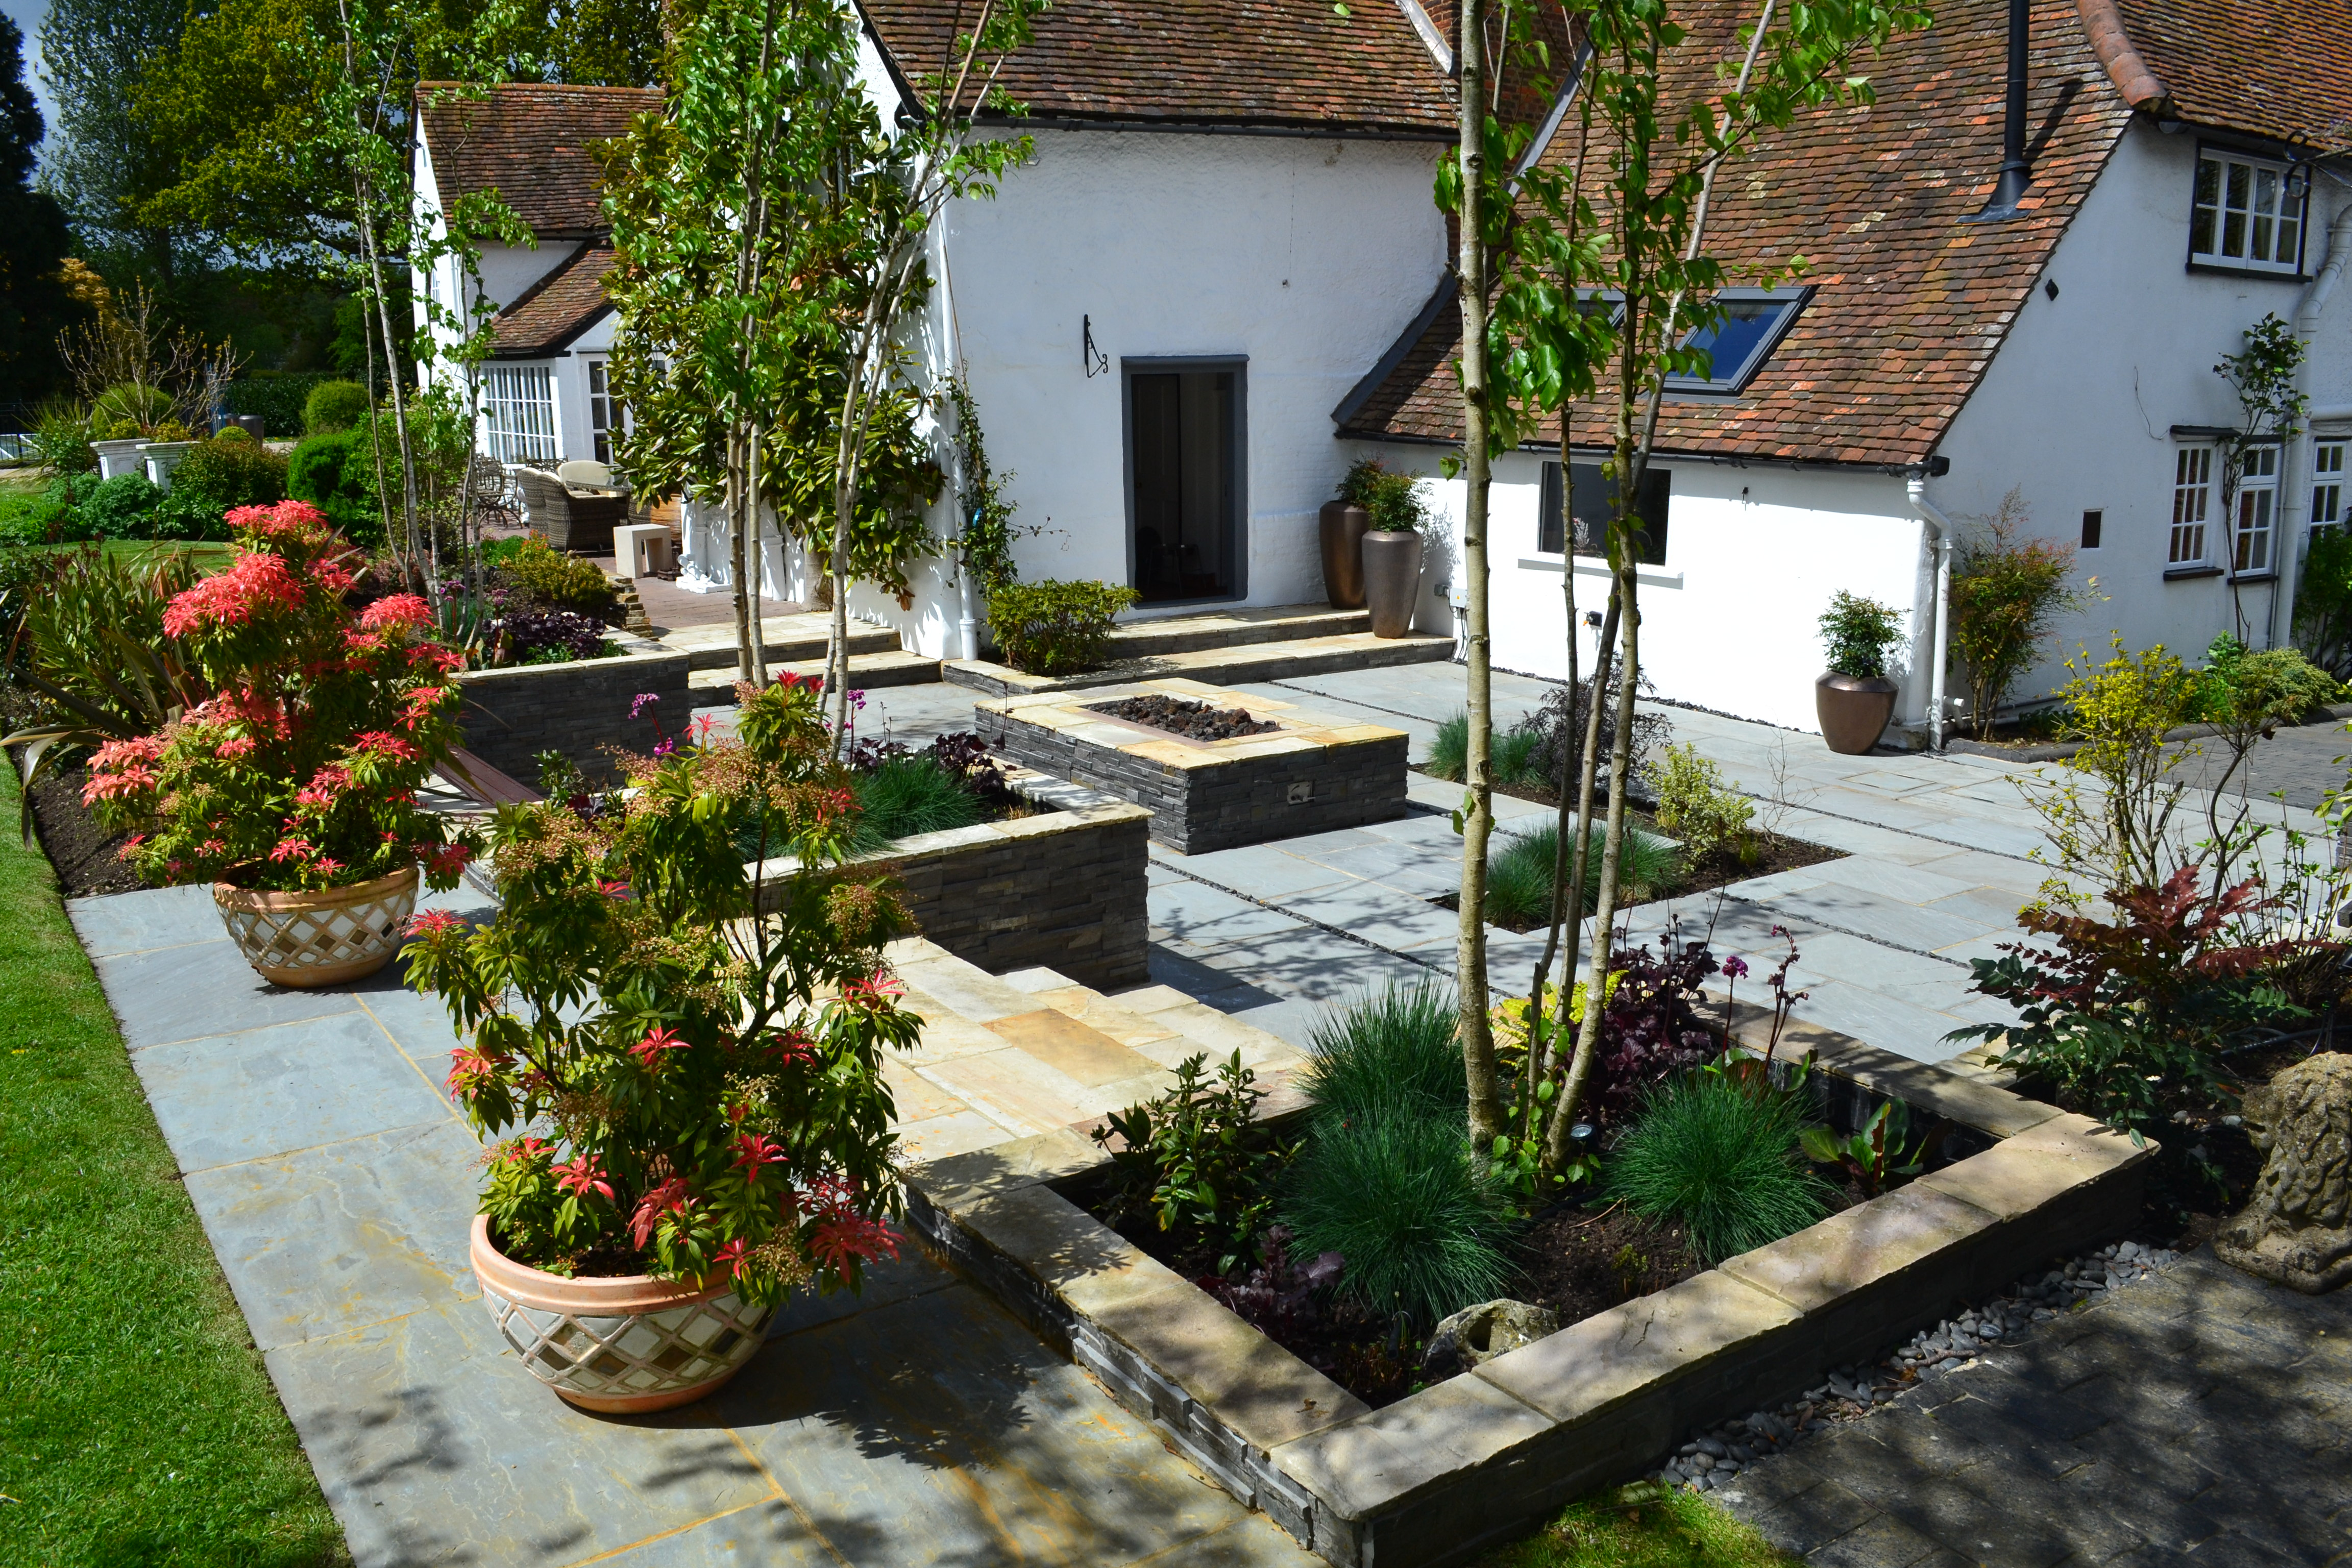 Contemporary courtyard garden in a rural setting paving for Award winning courtyard designs